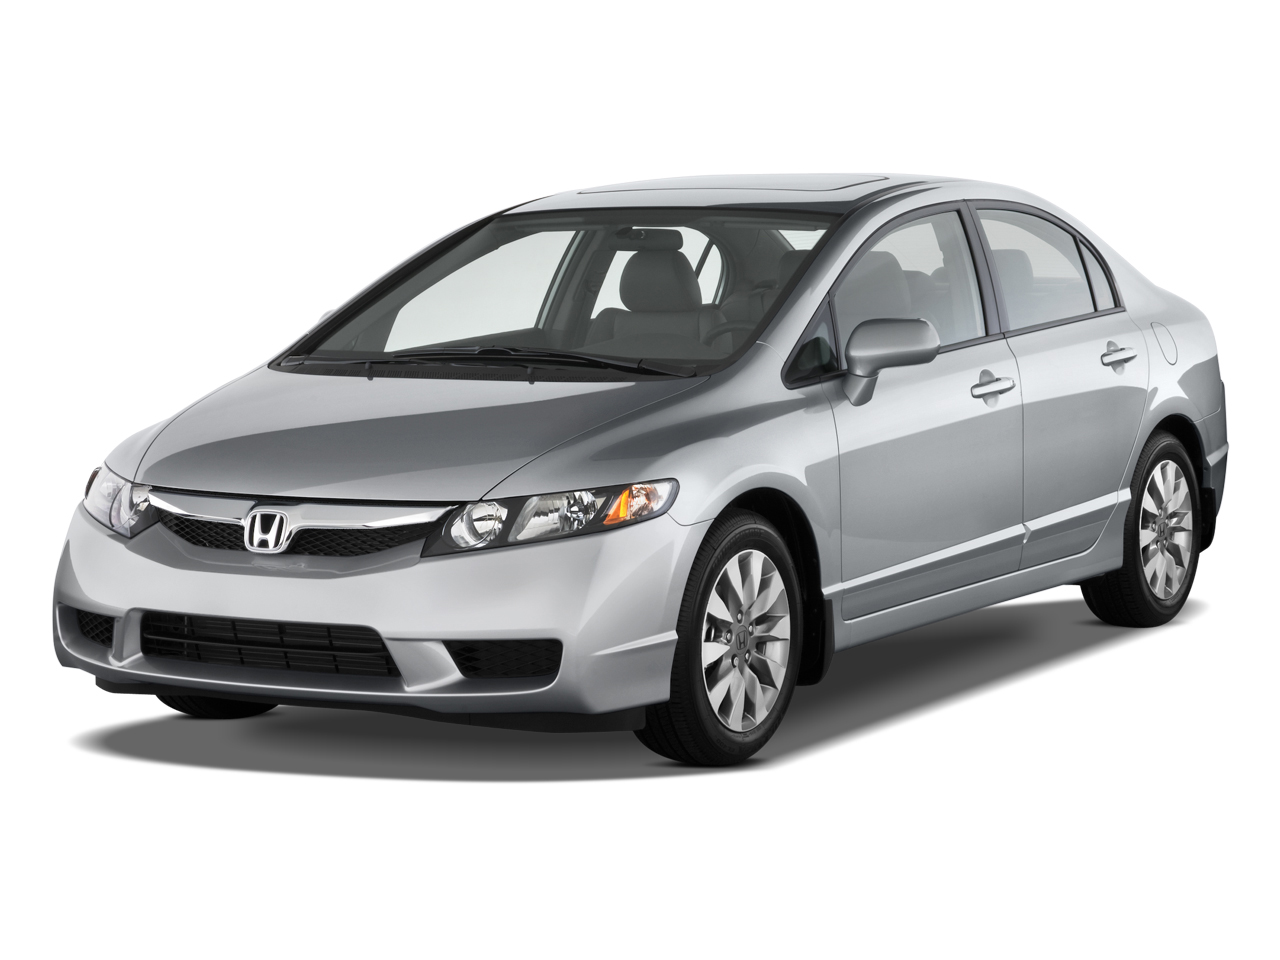 2011 Honda Civic Review Ratings Specs Prices And